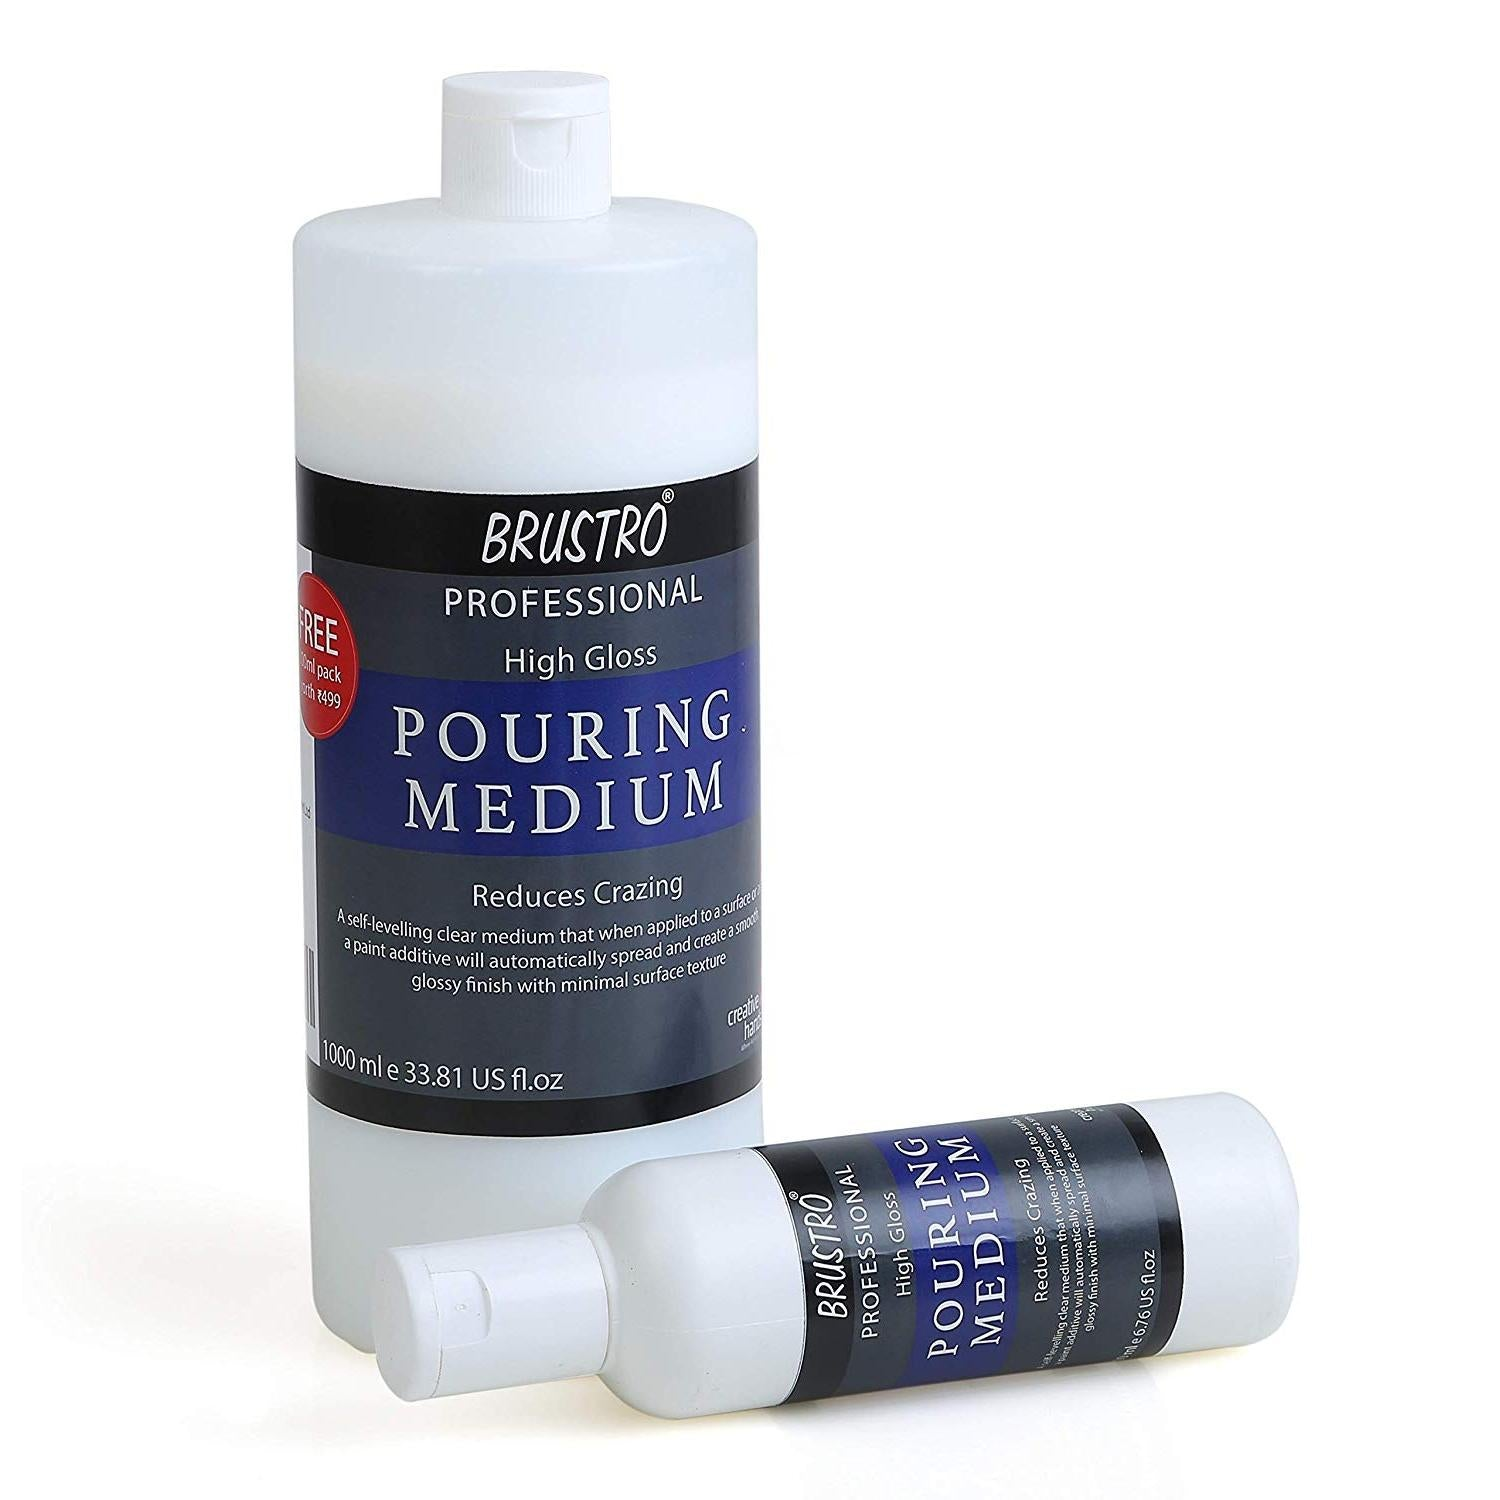 BRUSTRO Pouring Medium 1000 Ml (1 LTR.). Free BRUSTRO Pouring Medium 200 Ml (Worth Rs. 499)